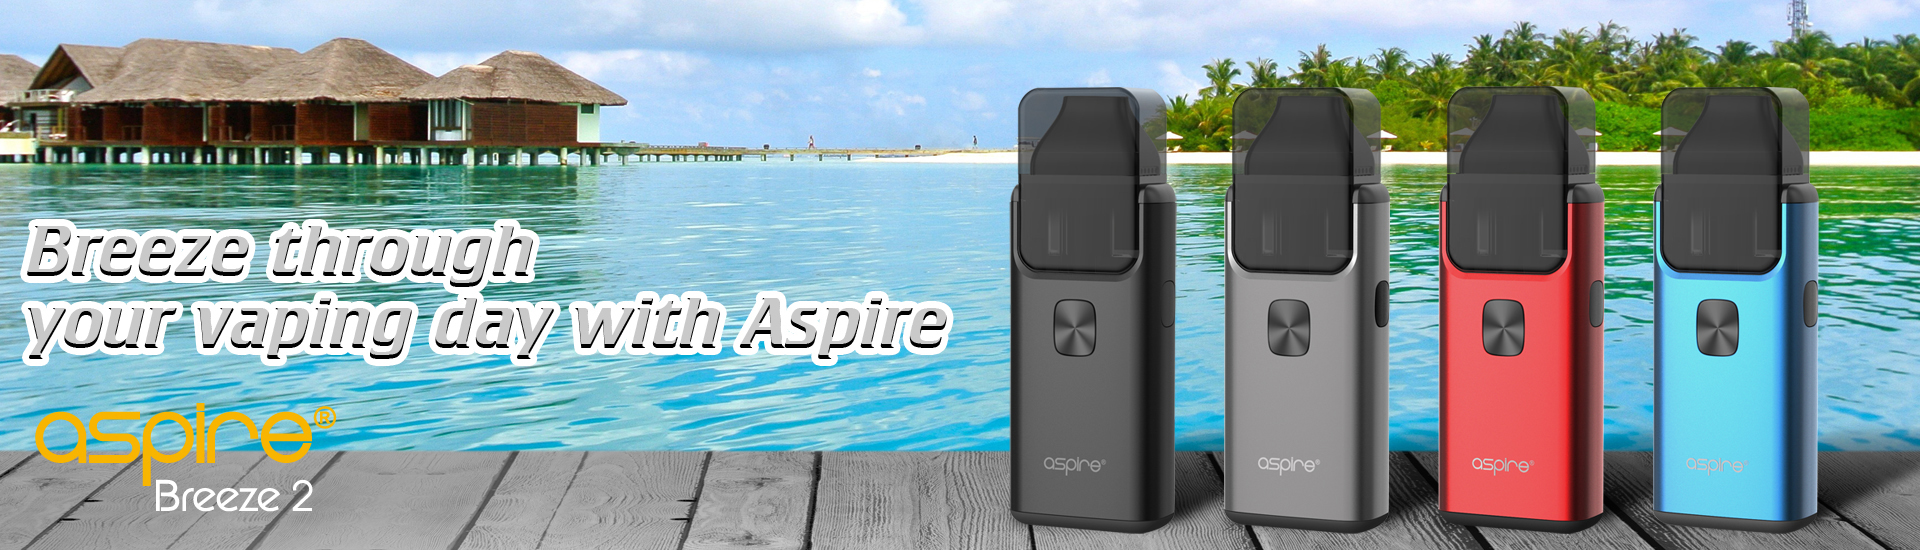 2018 Popular Aspire Breeze 2 0.6ohm Coil Pod System Kit for Wholesale